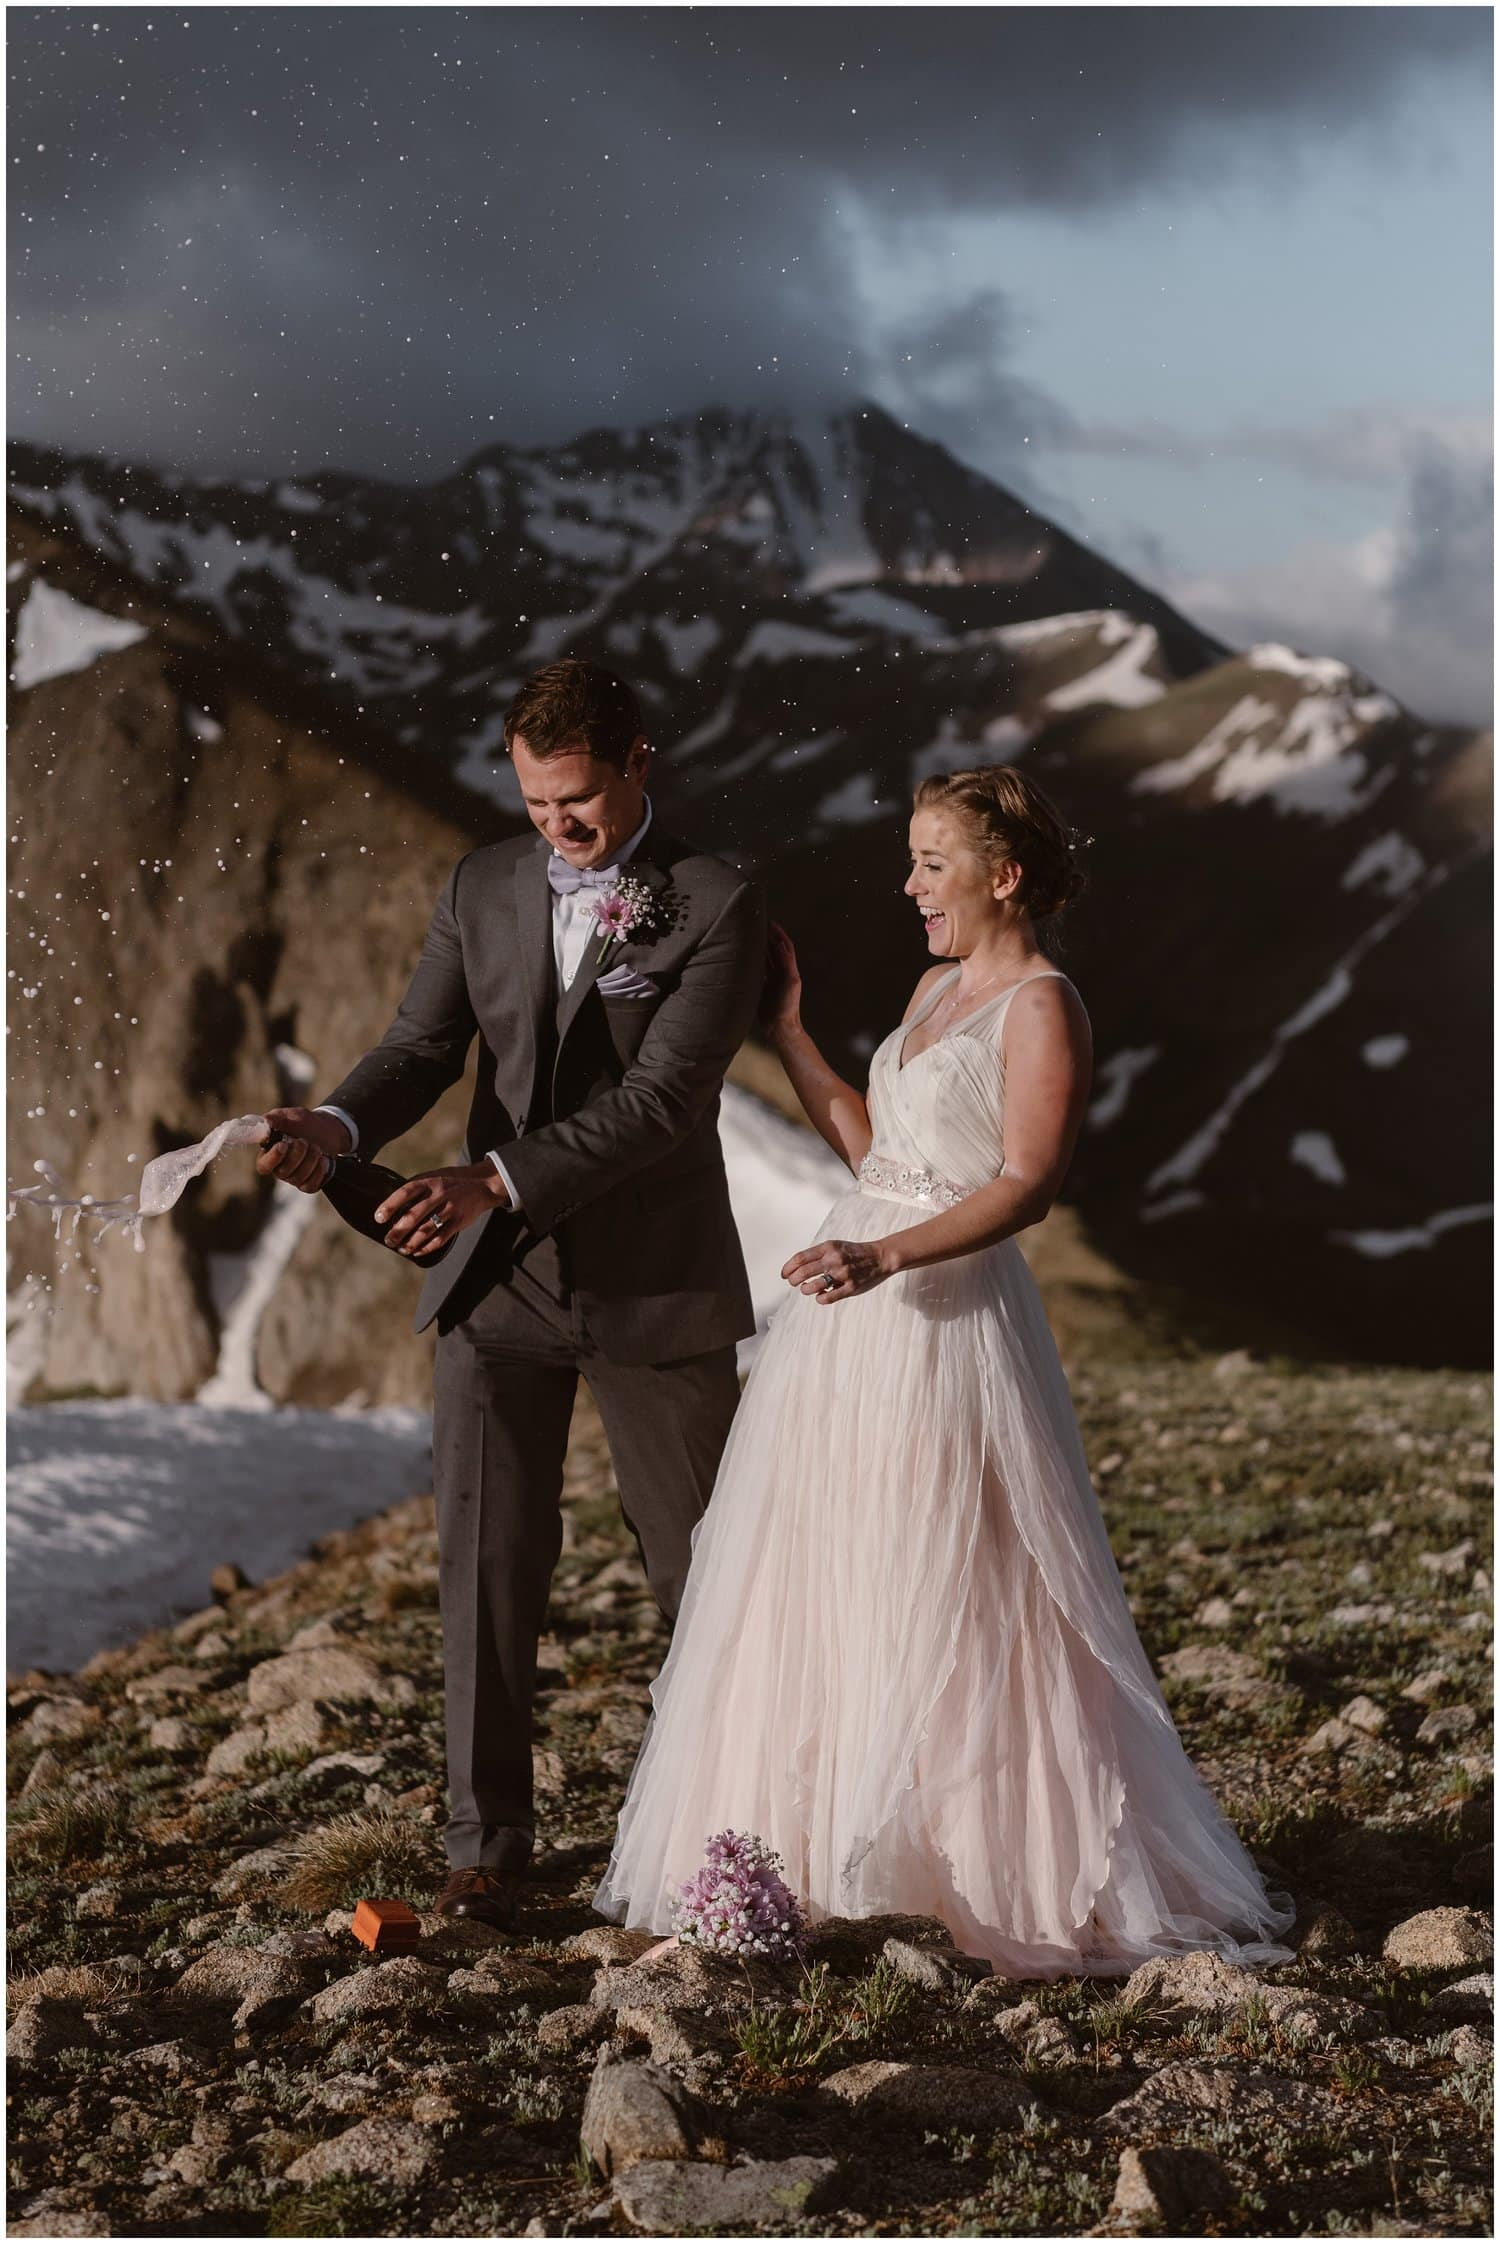 A bride and groom pop a bottle of champagne in the snowy mountains on their wedding day.